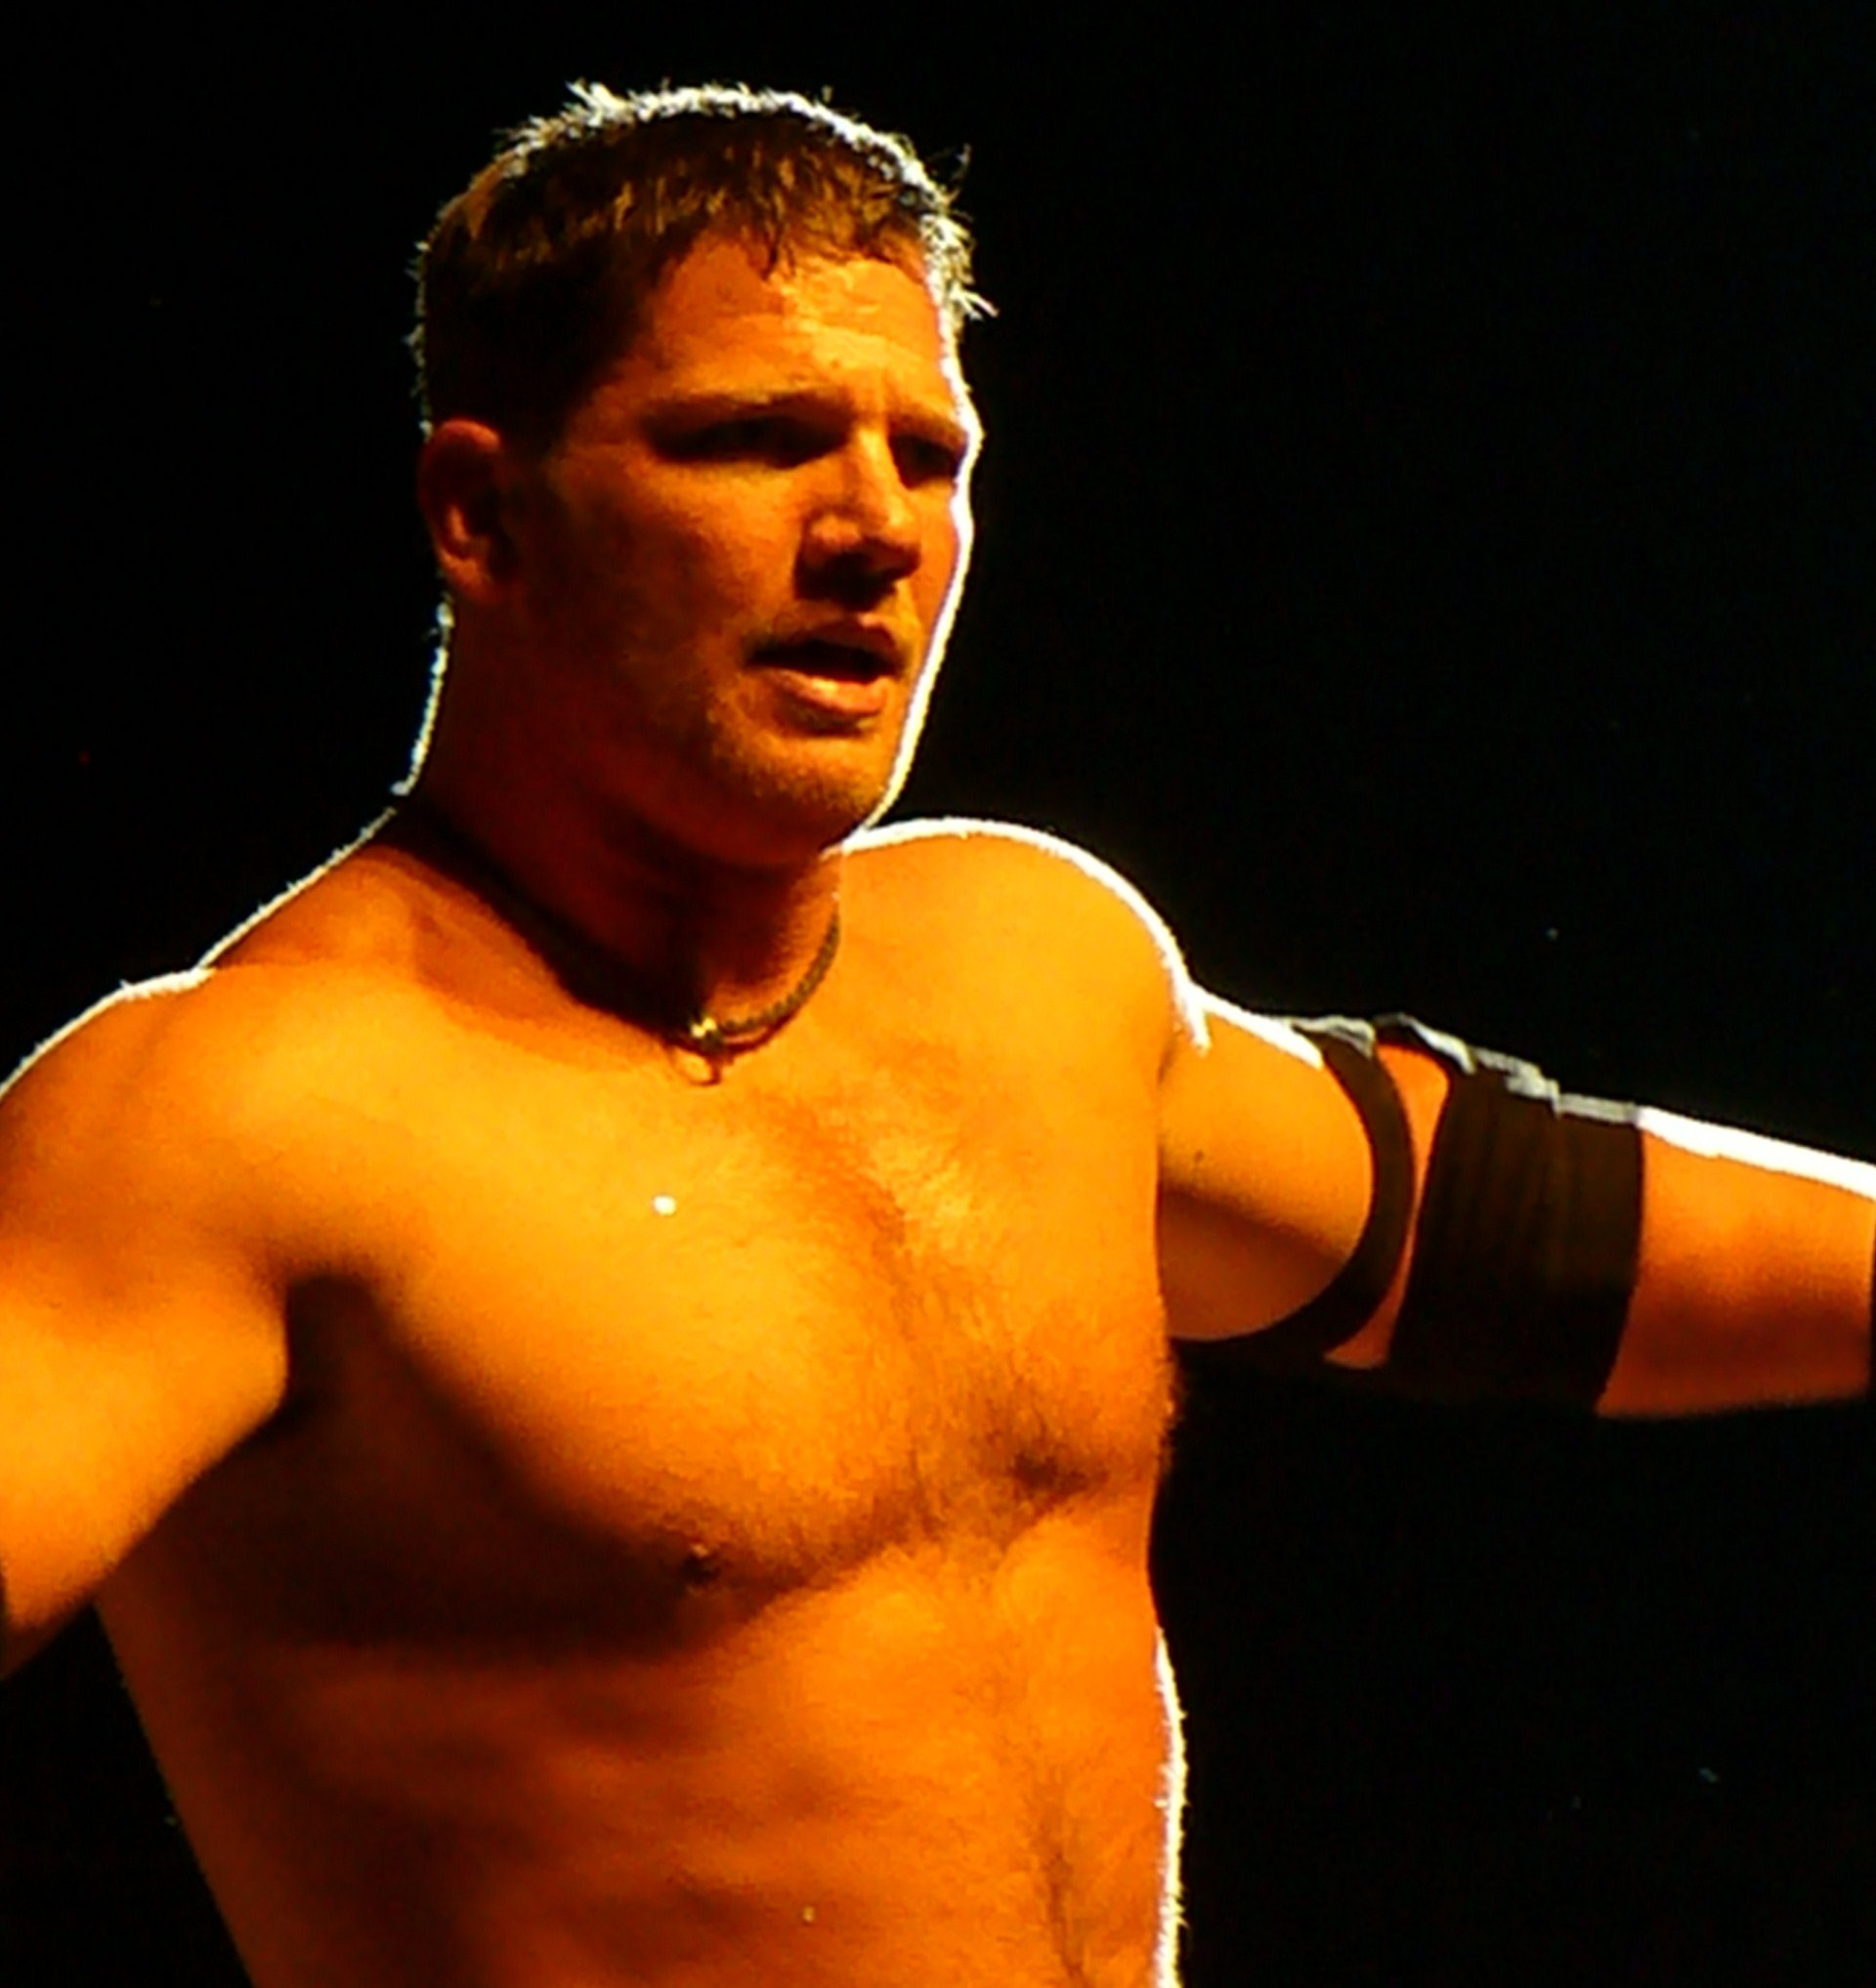 Styles at a TNA house show in London, England in September 2008